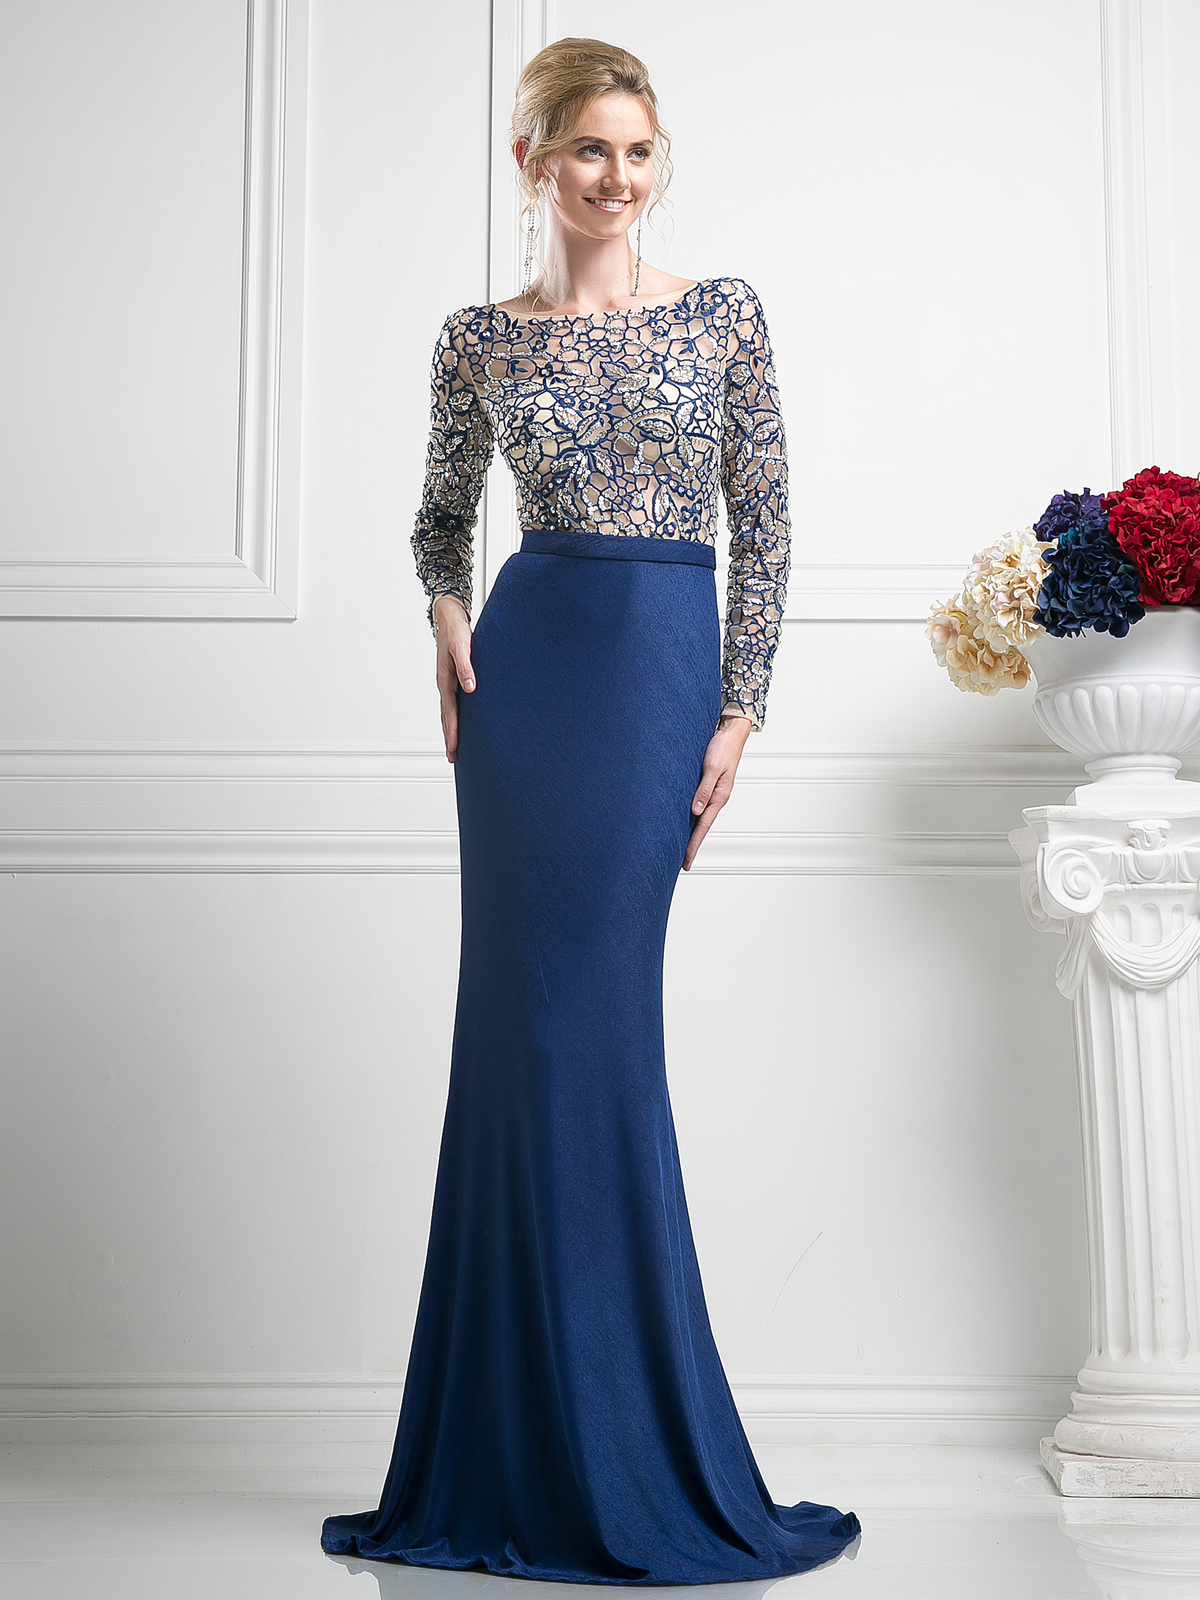 Illusion Mother of the Bride Dress with Beading - Sung Boutique L.A.